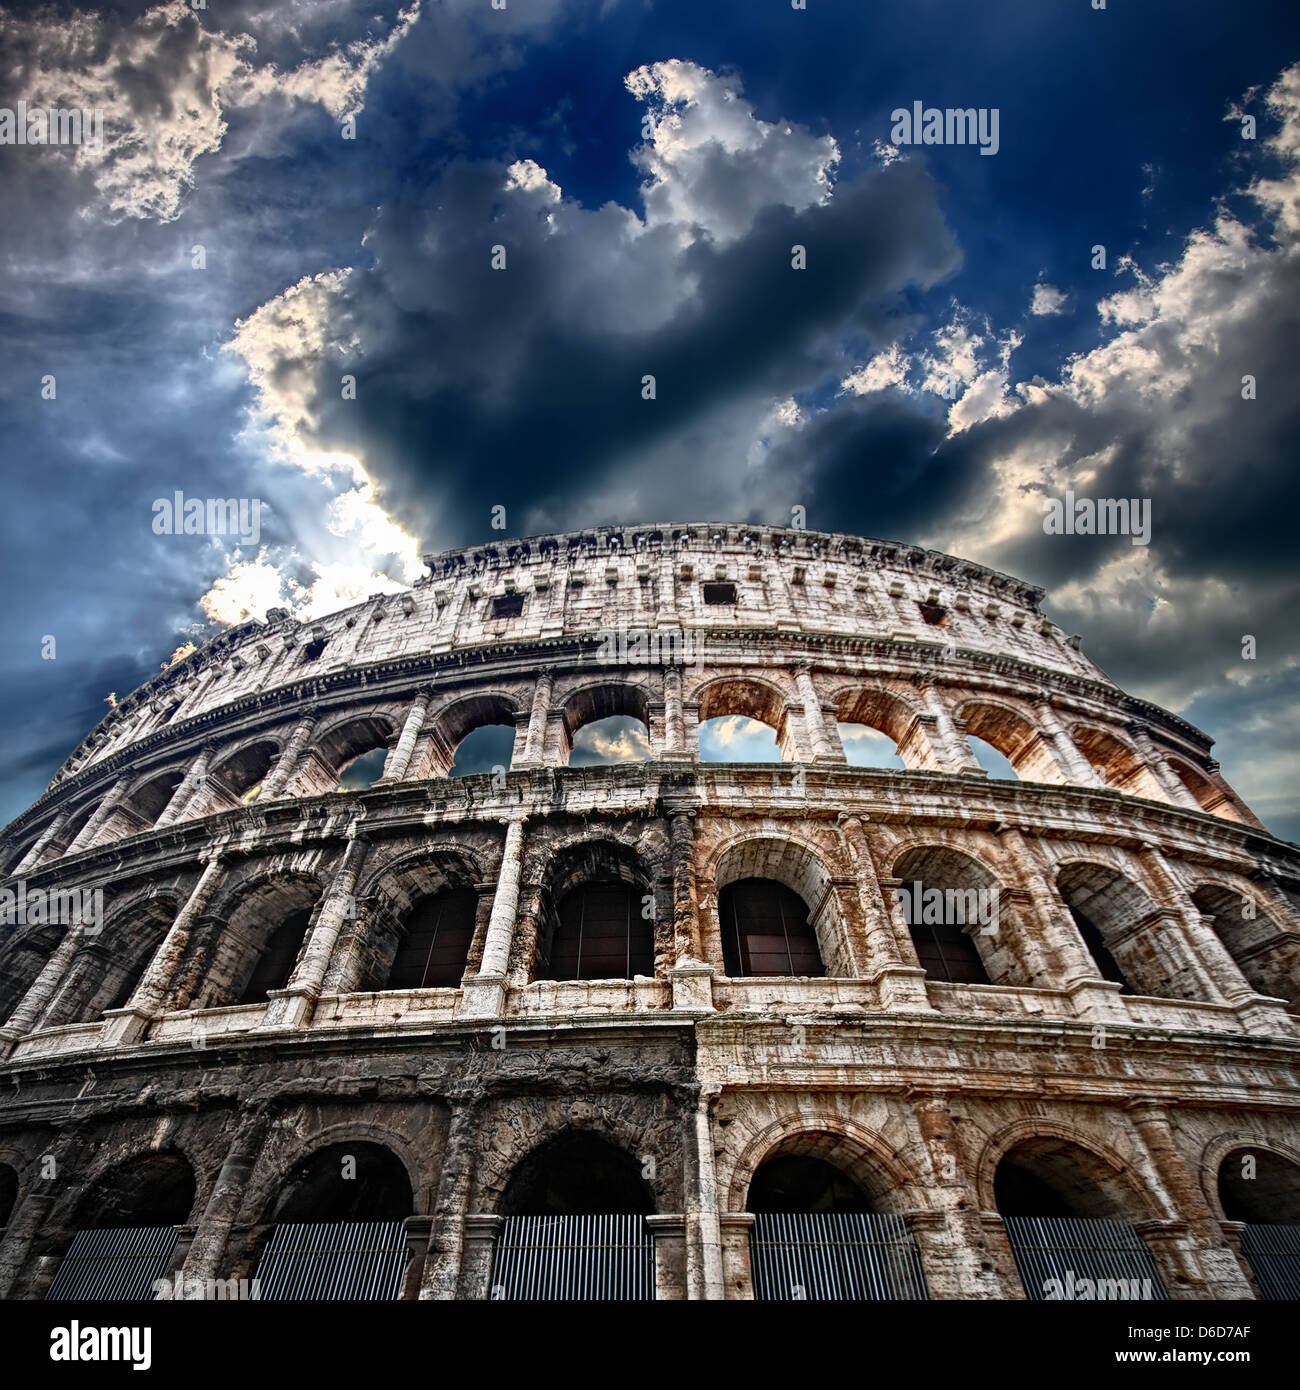 The Colosseum, flaming arena - Stock Image